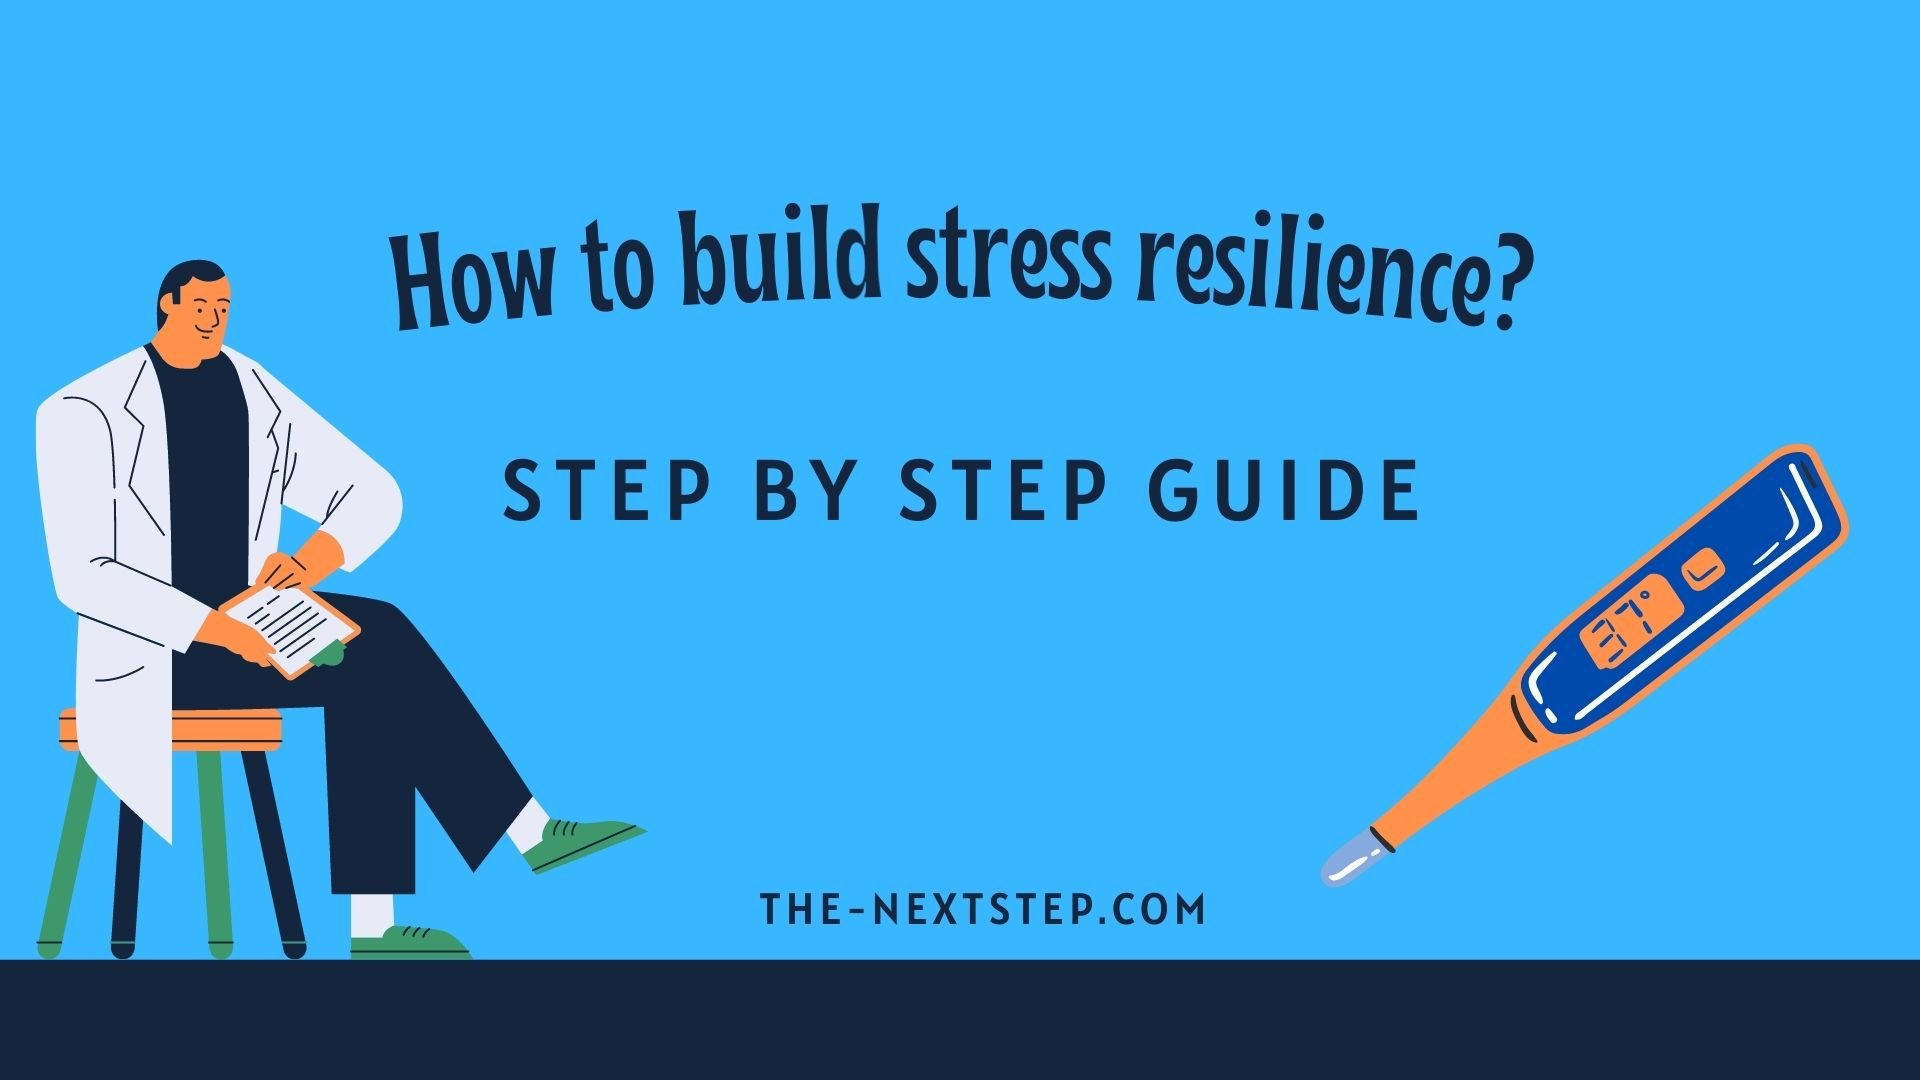 Building stress resilience